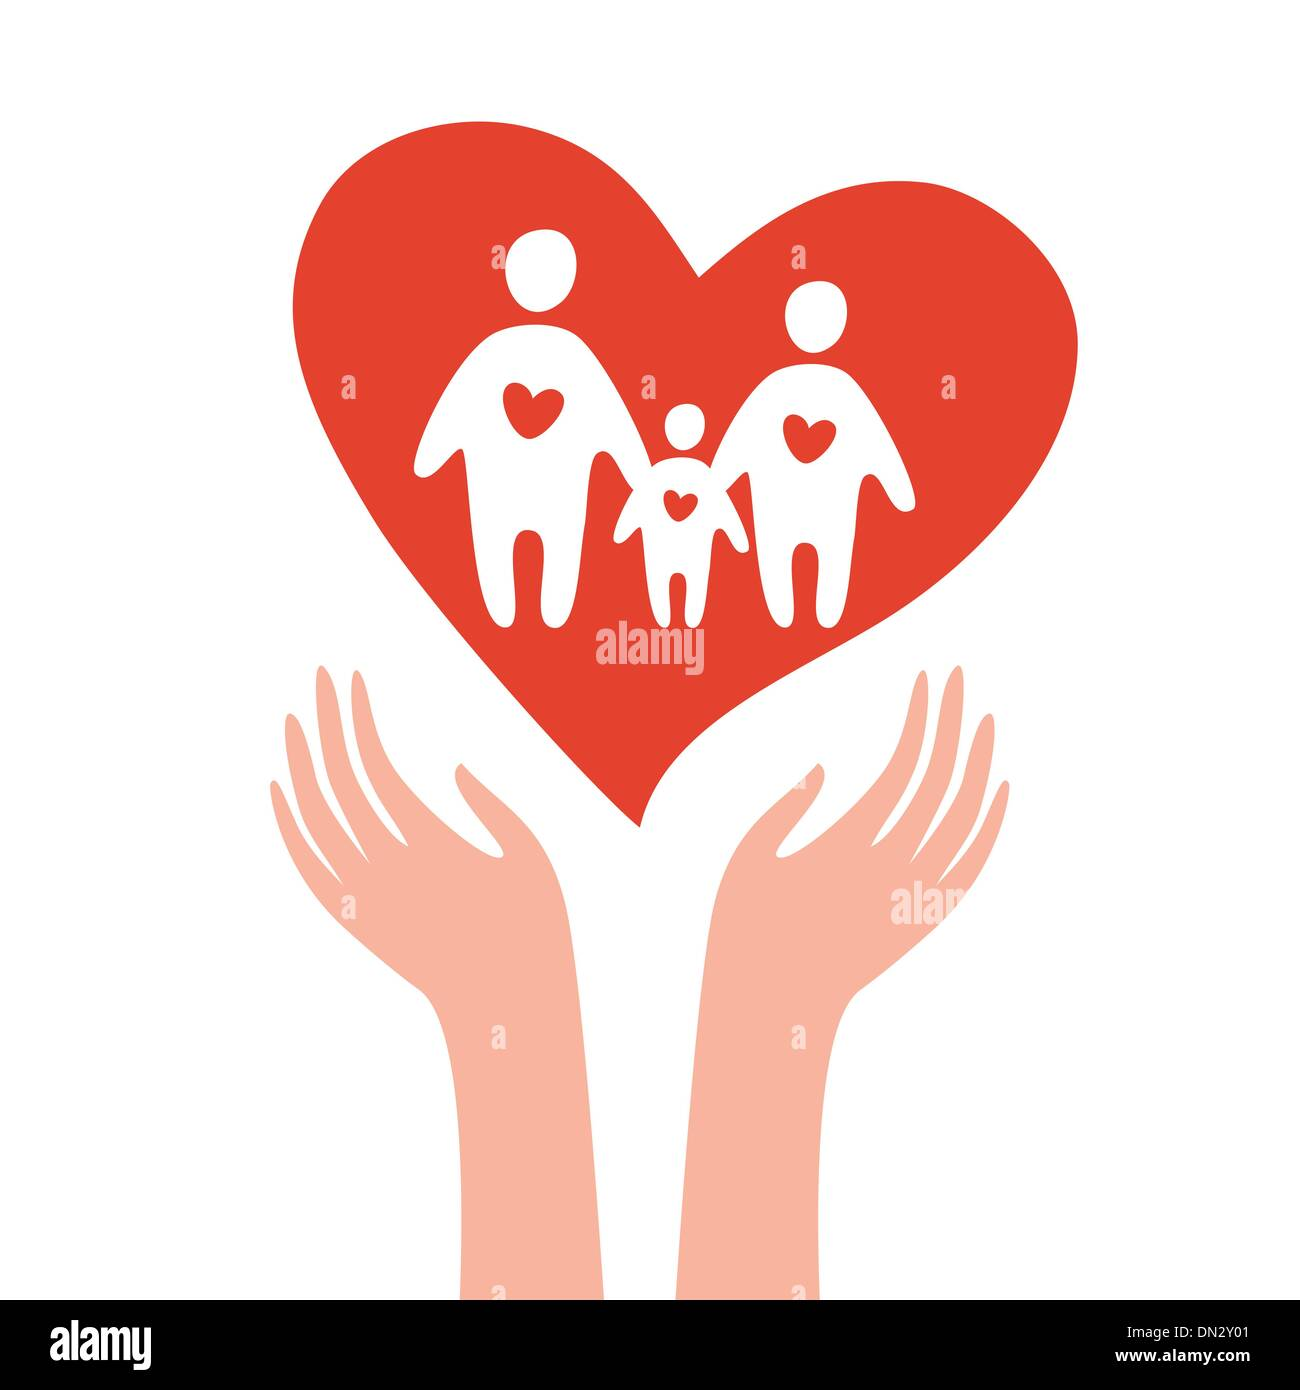 take-care-of-family - Stock Image